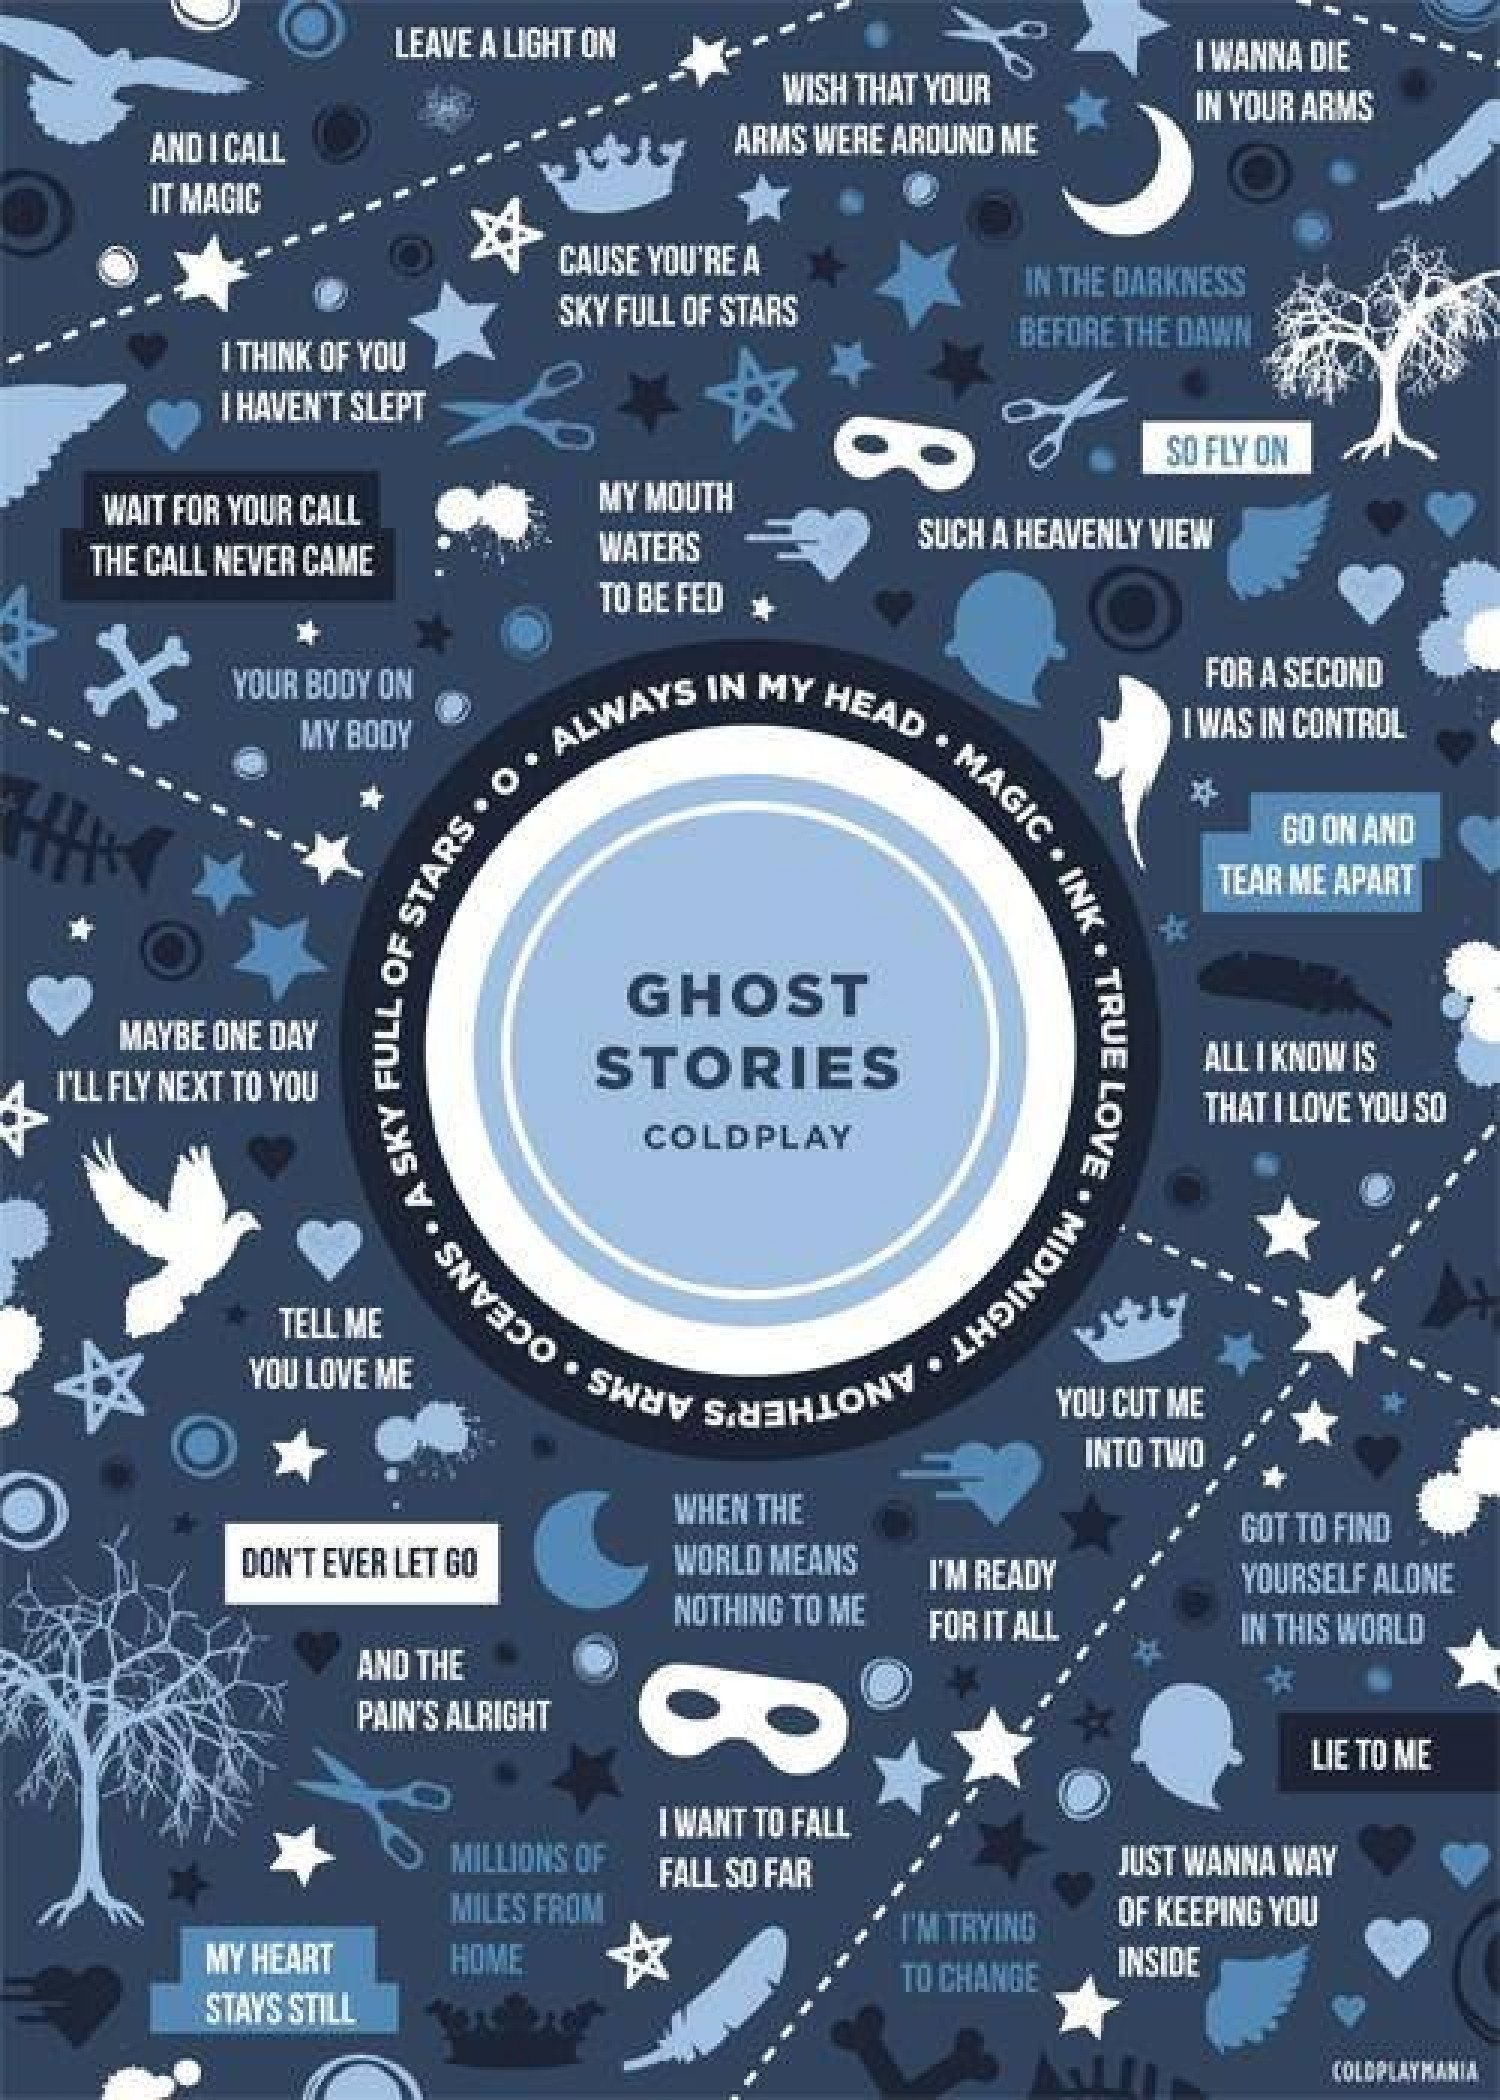 Coldplay's Ghost Stori...